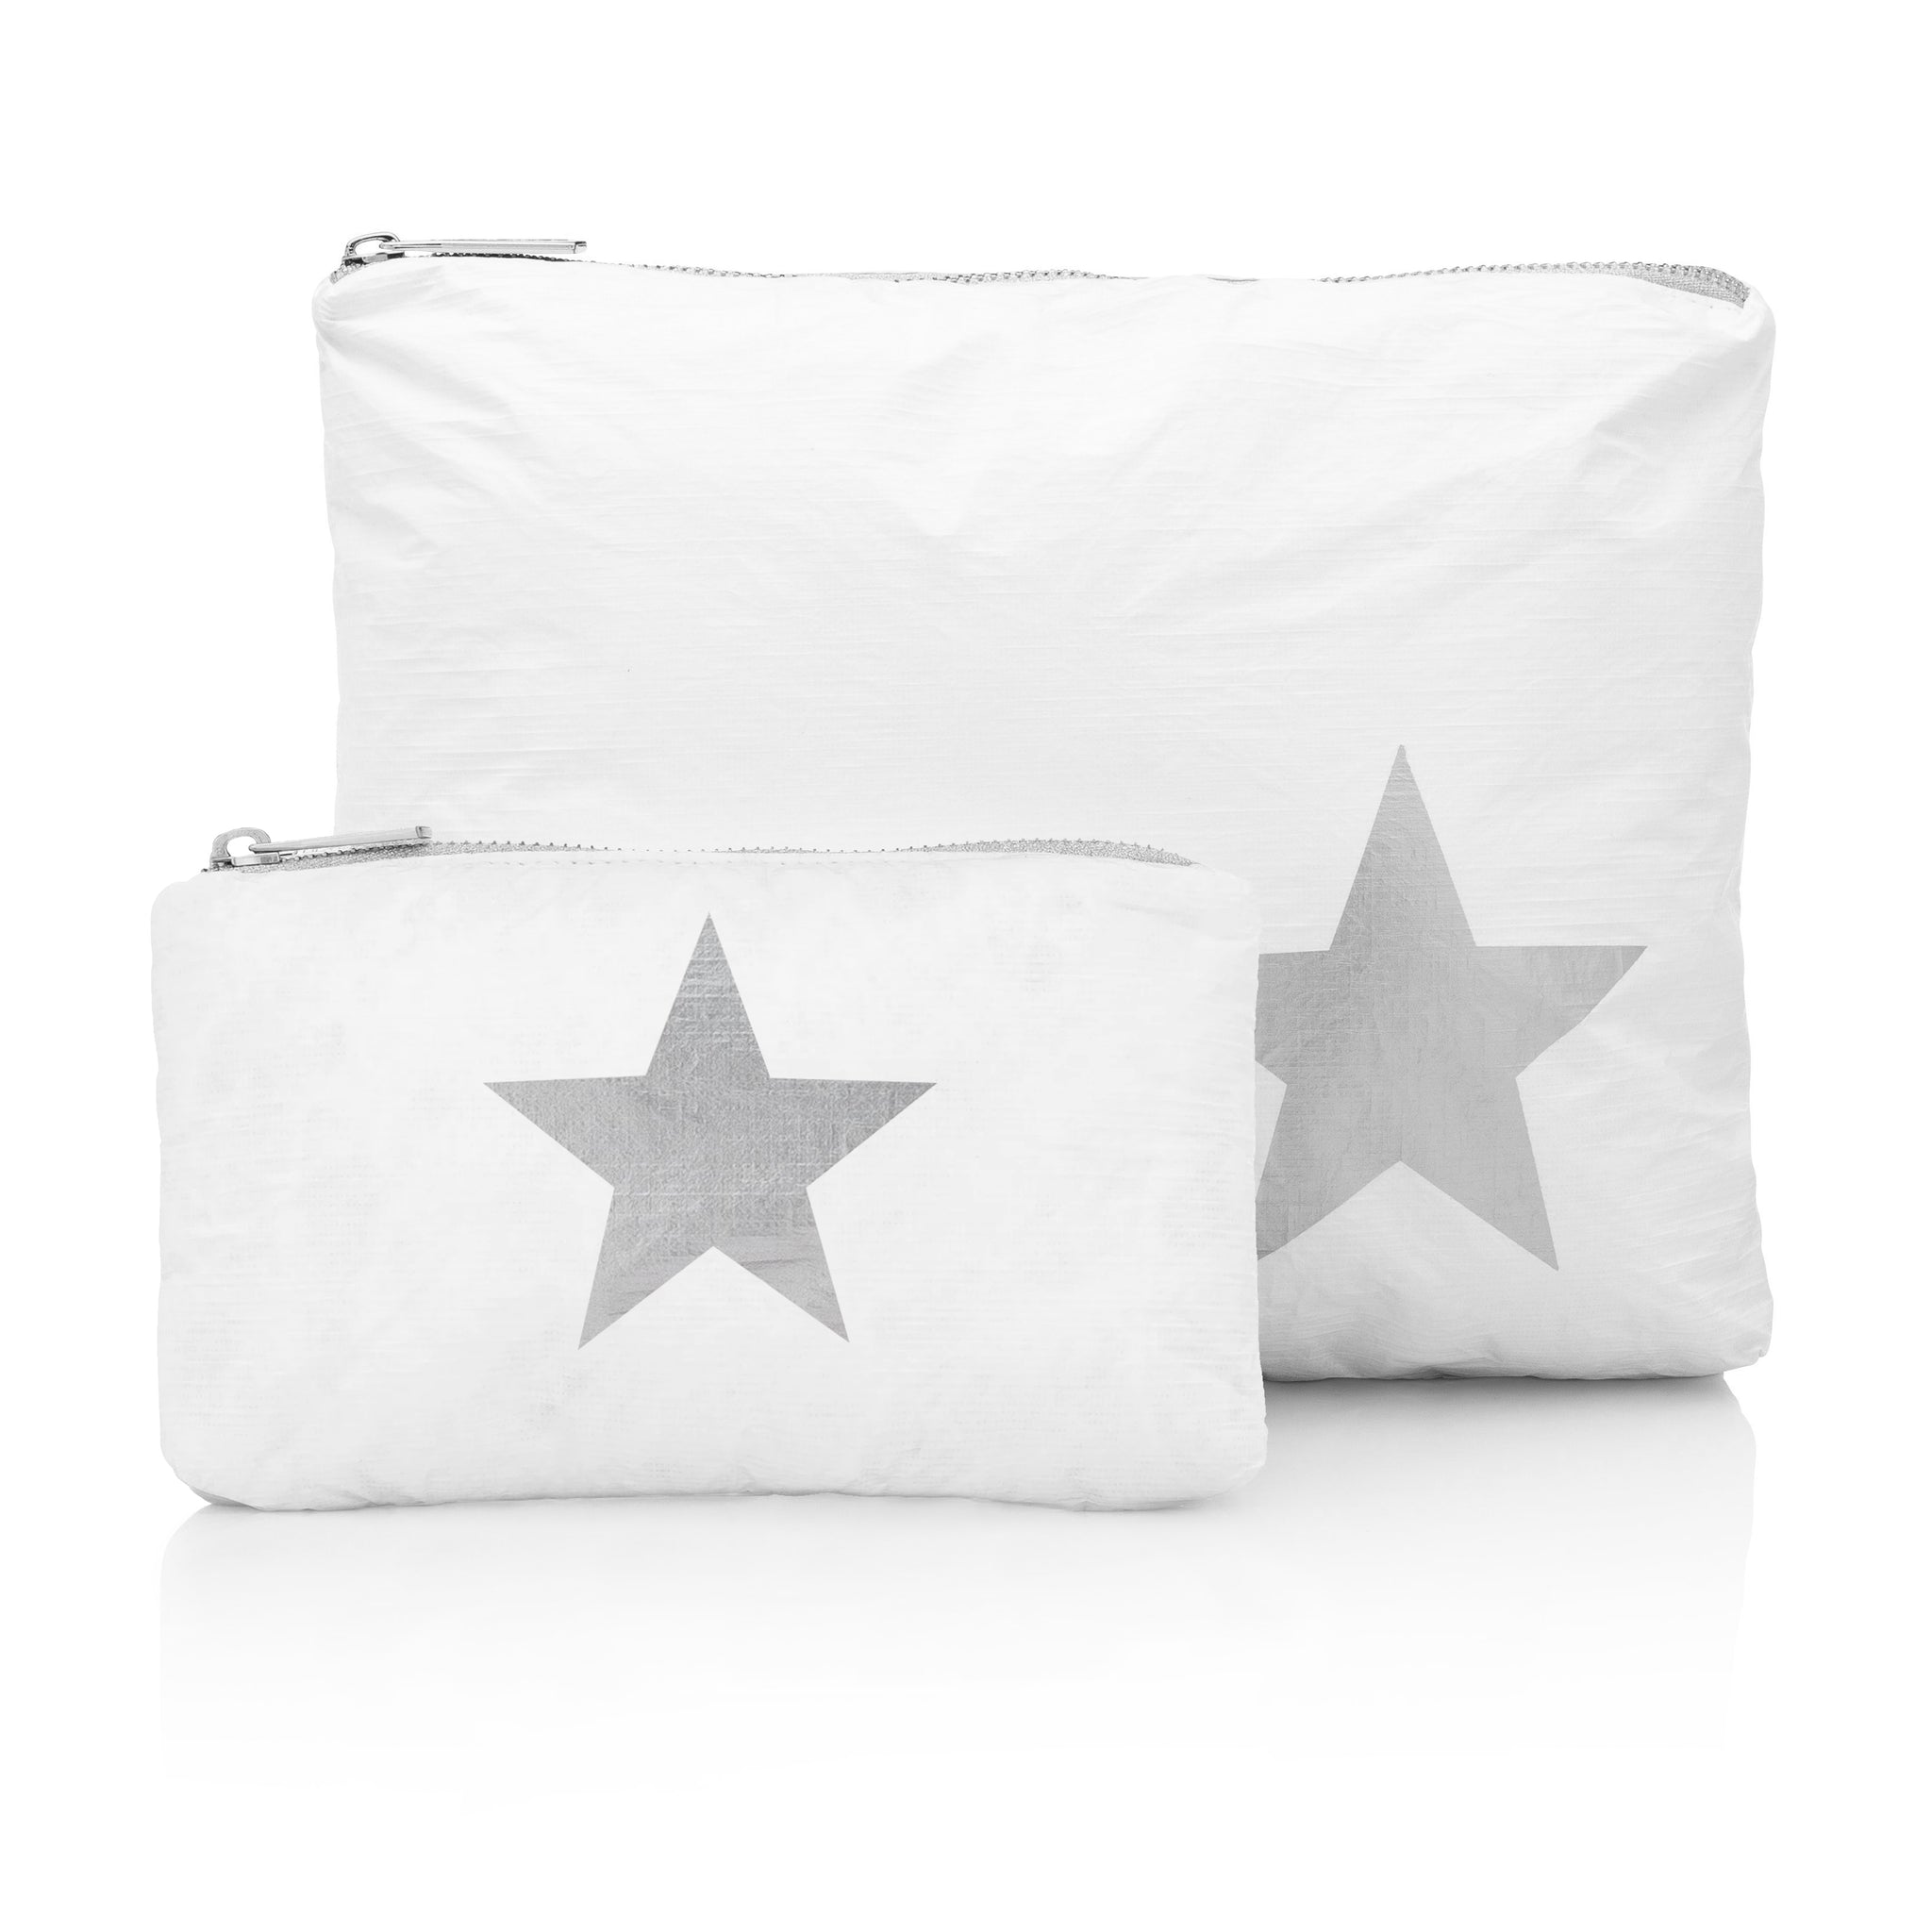 Set of Two - White with Silver Star